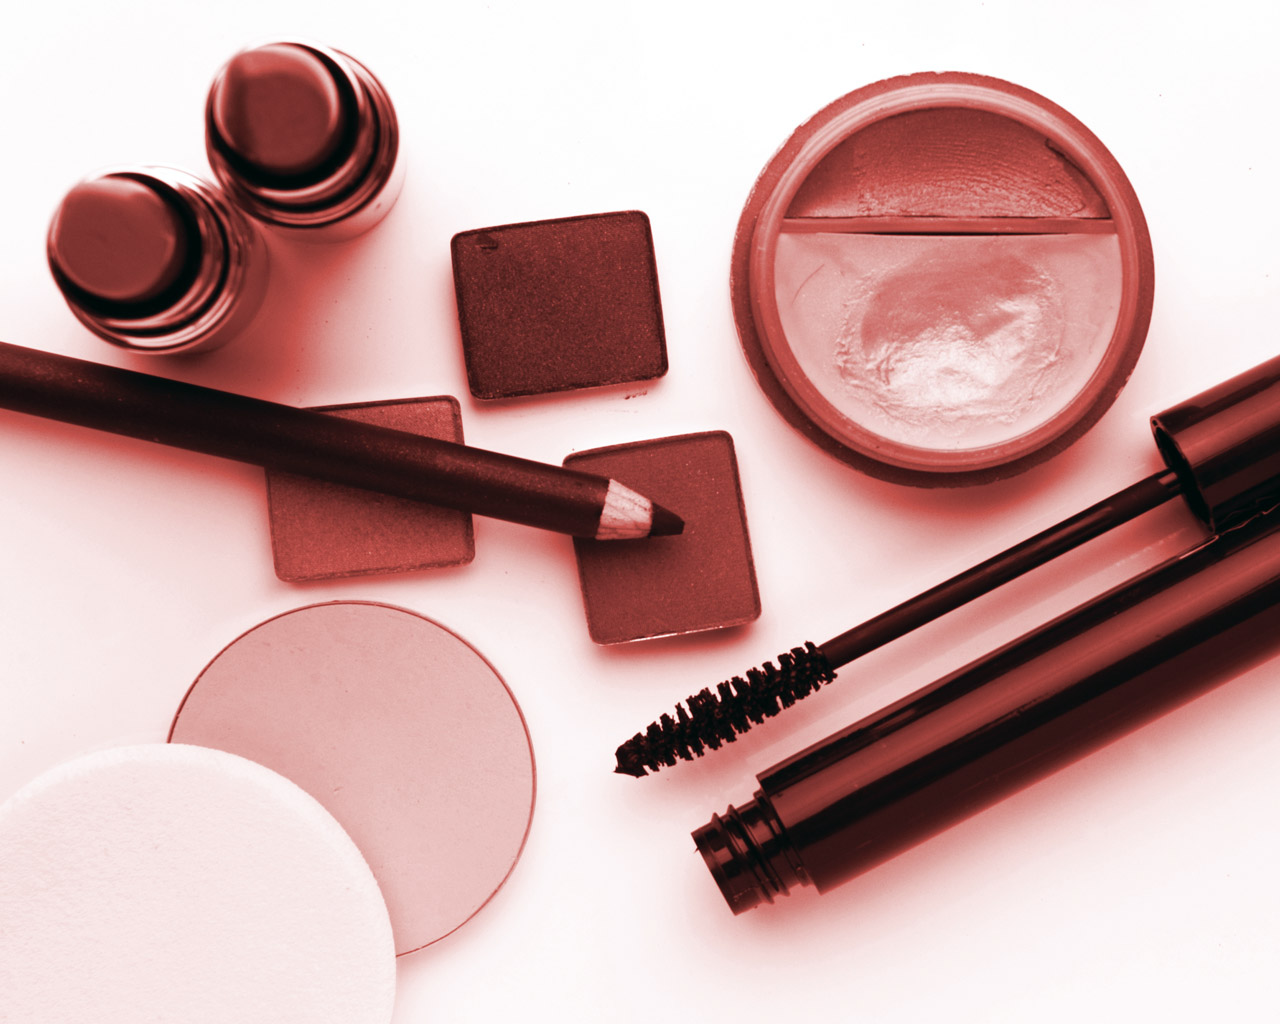 makeup tools wallpaper 59561